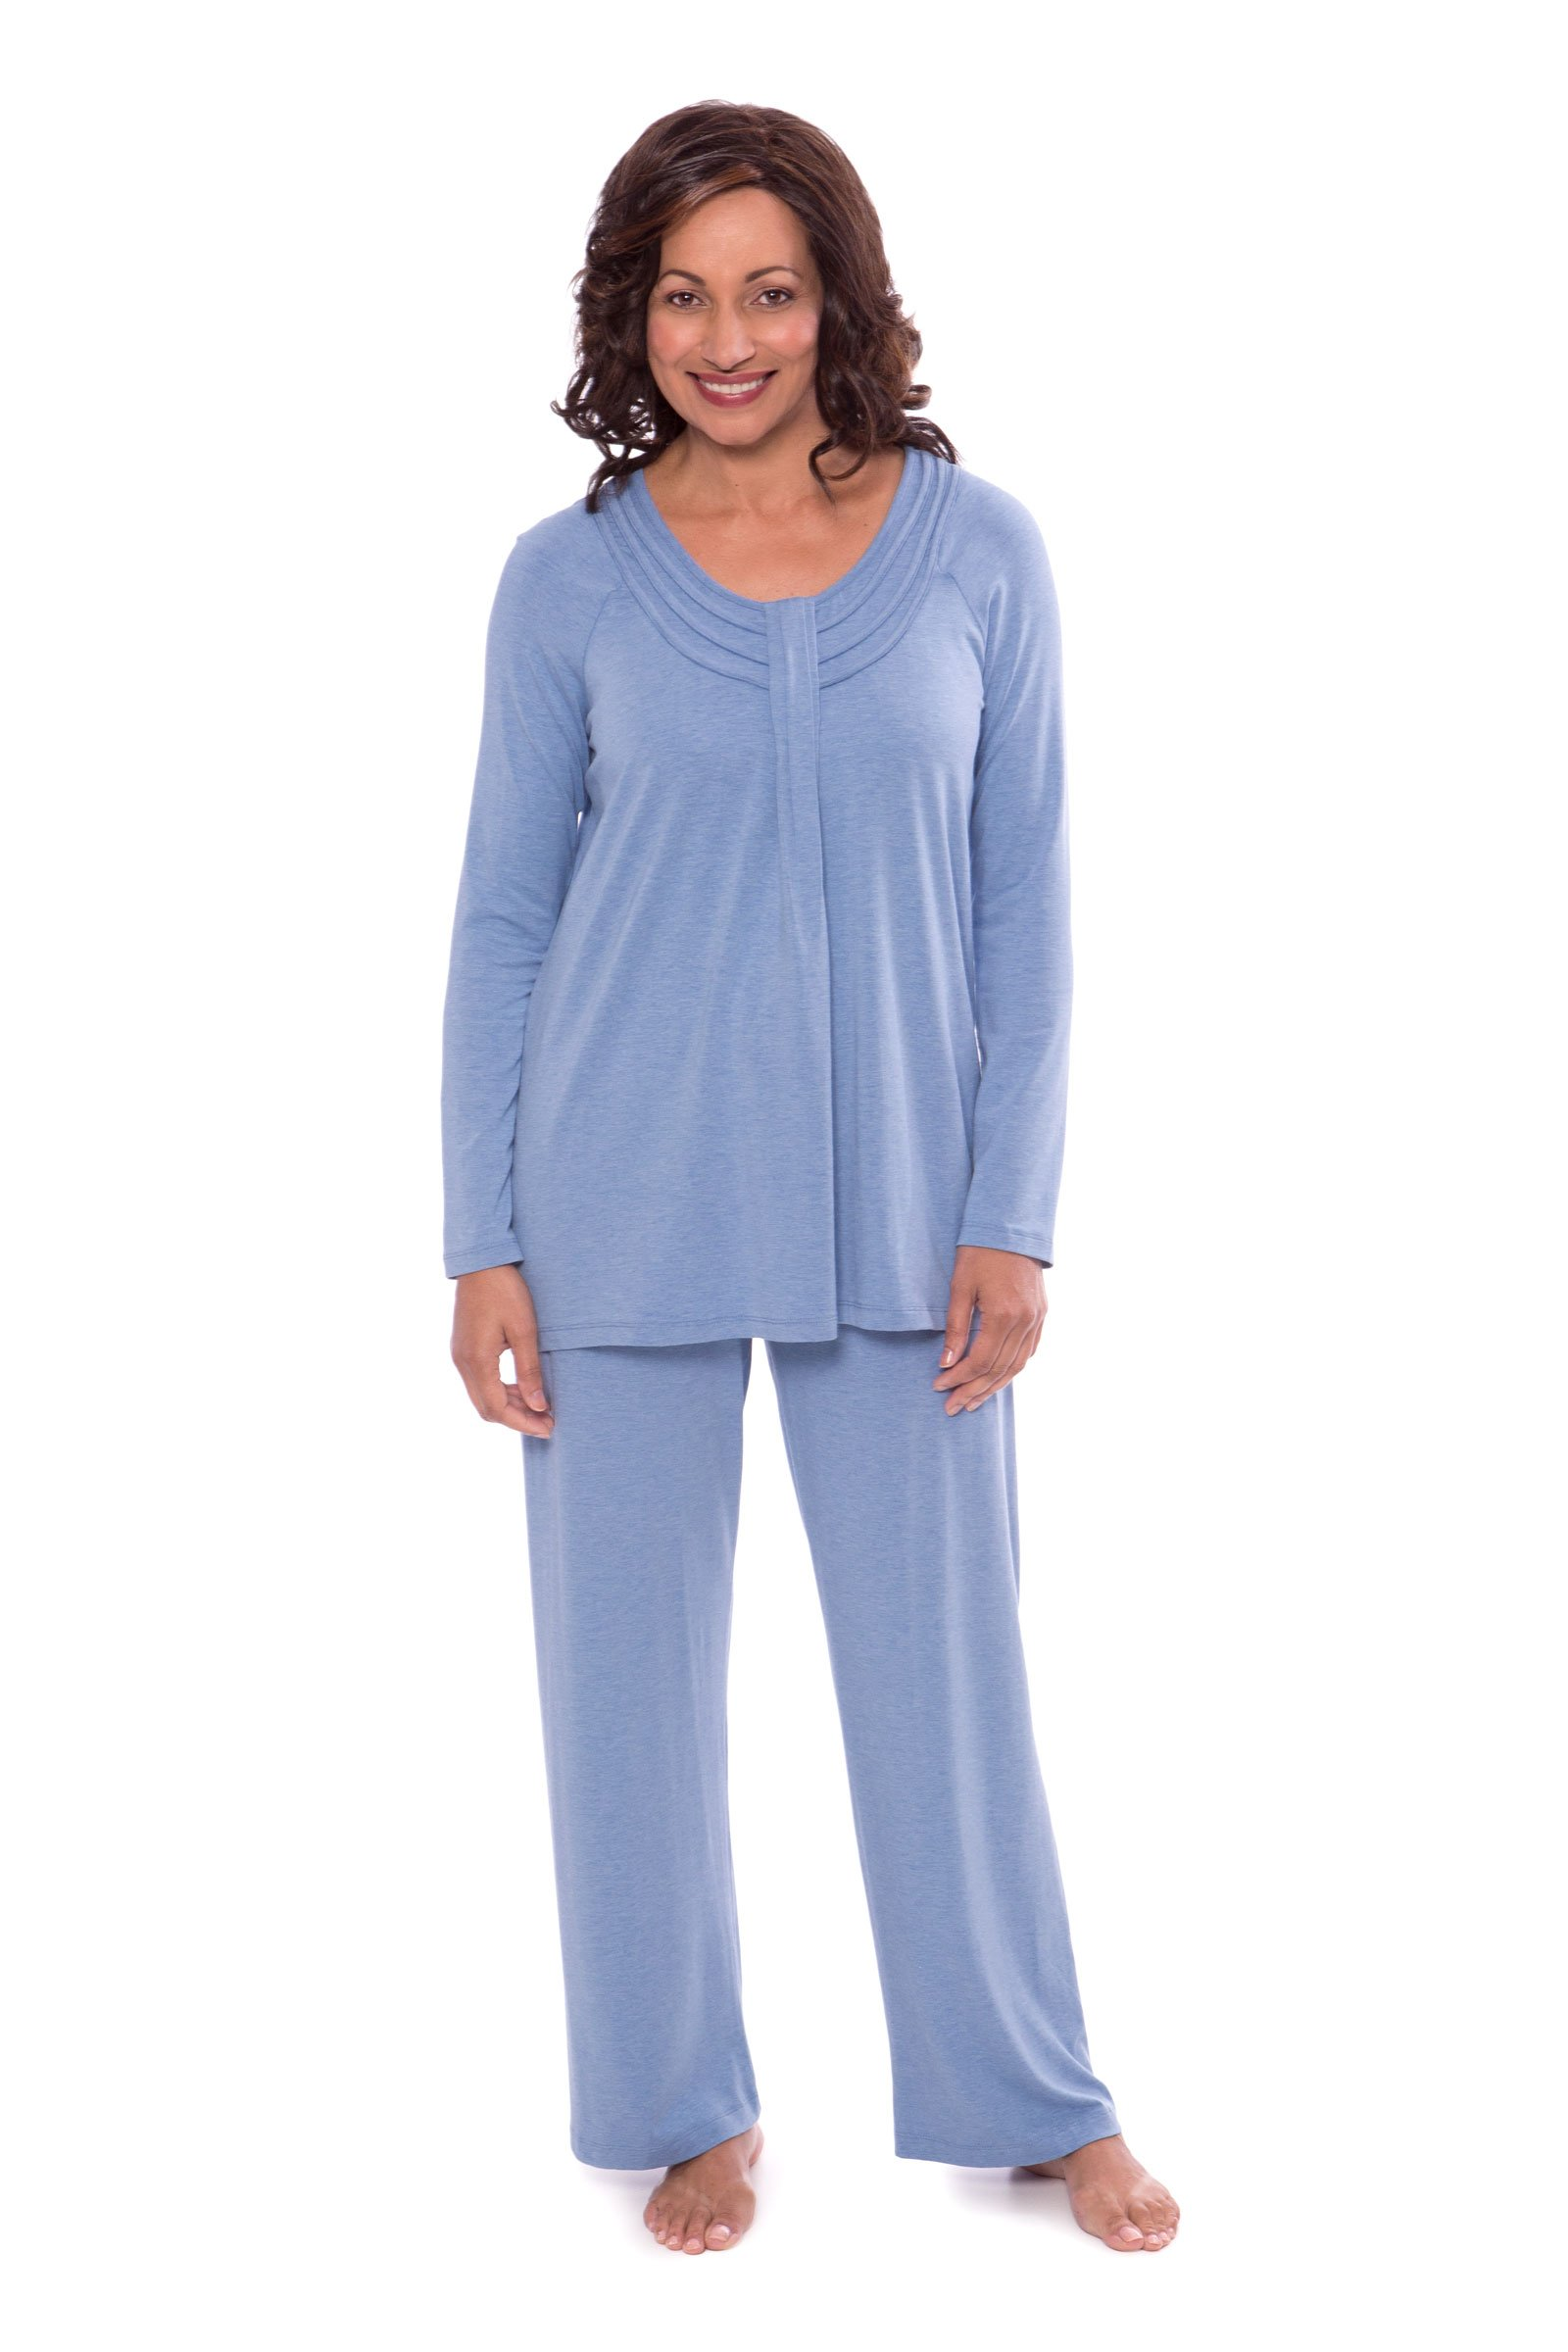 Women's Long Sleeve PJs in Bamboo Viscose (Replenish, Heather Ice Blue, X-Large) Cool Get Well Hospital Gifts for Her WB0006-2U2-XL